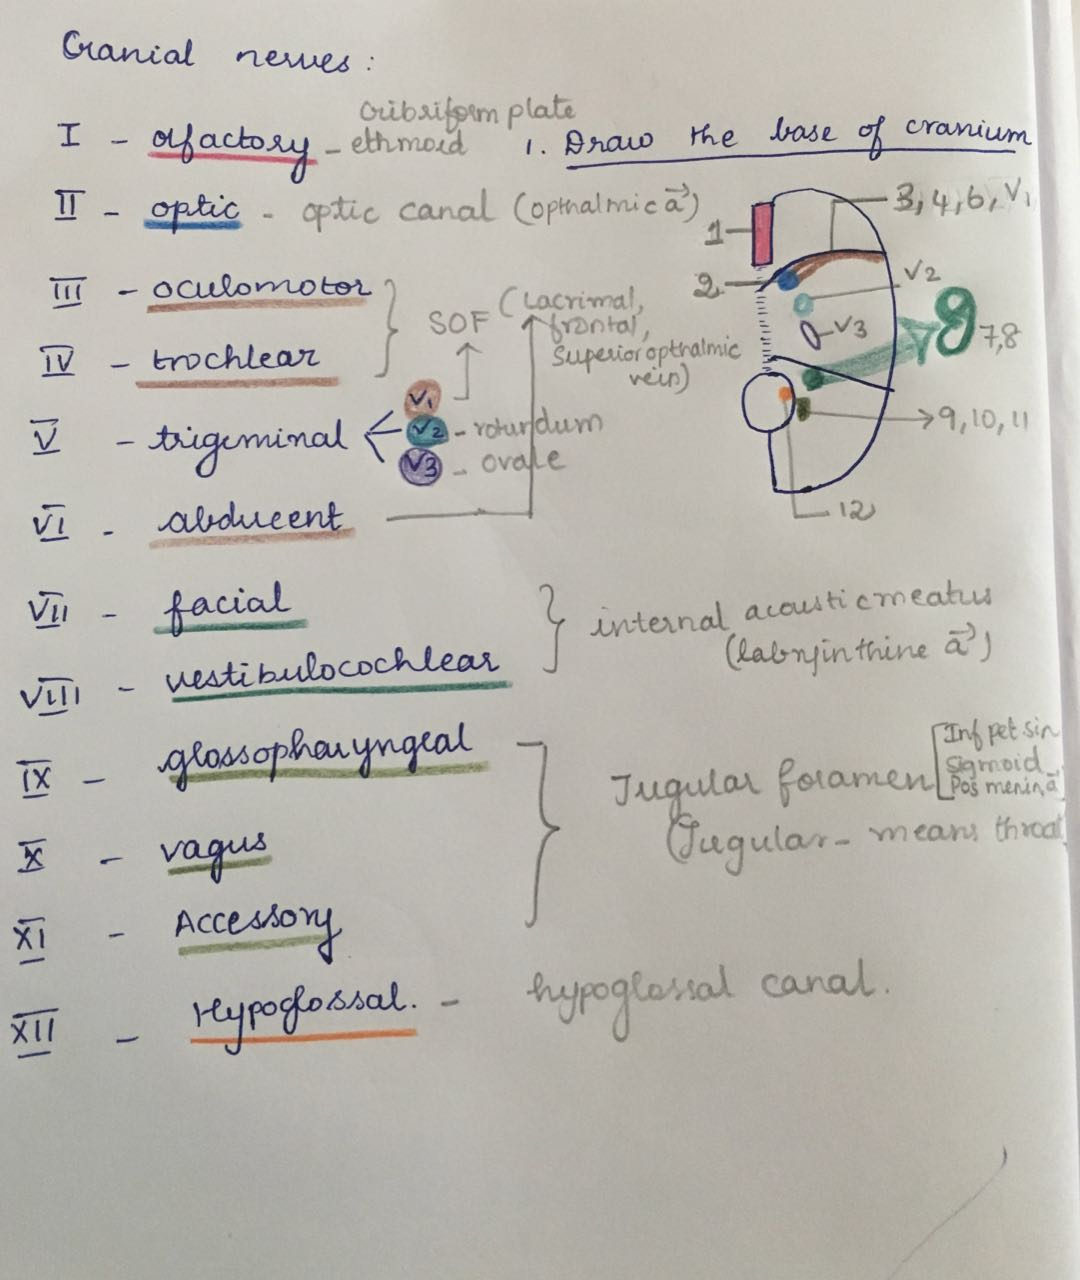 Medicowesome: Mnemonic for foramen of cranial nerves